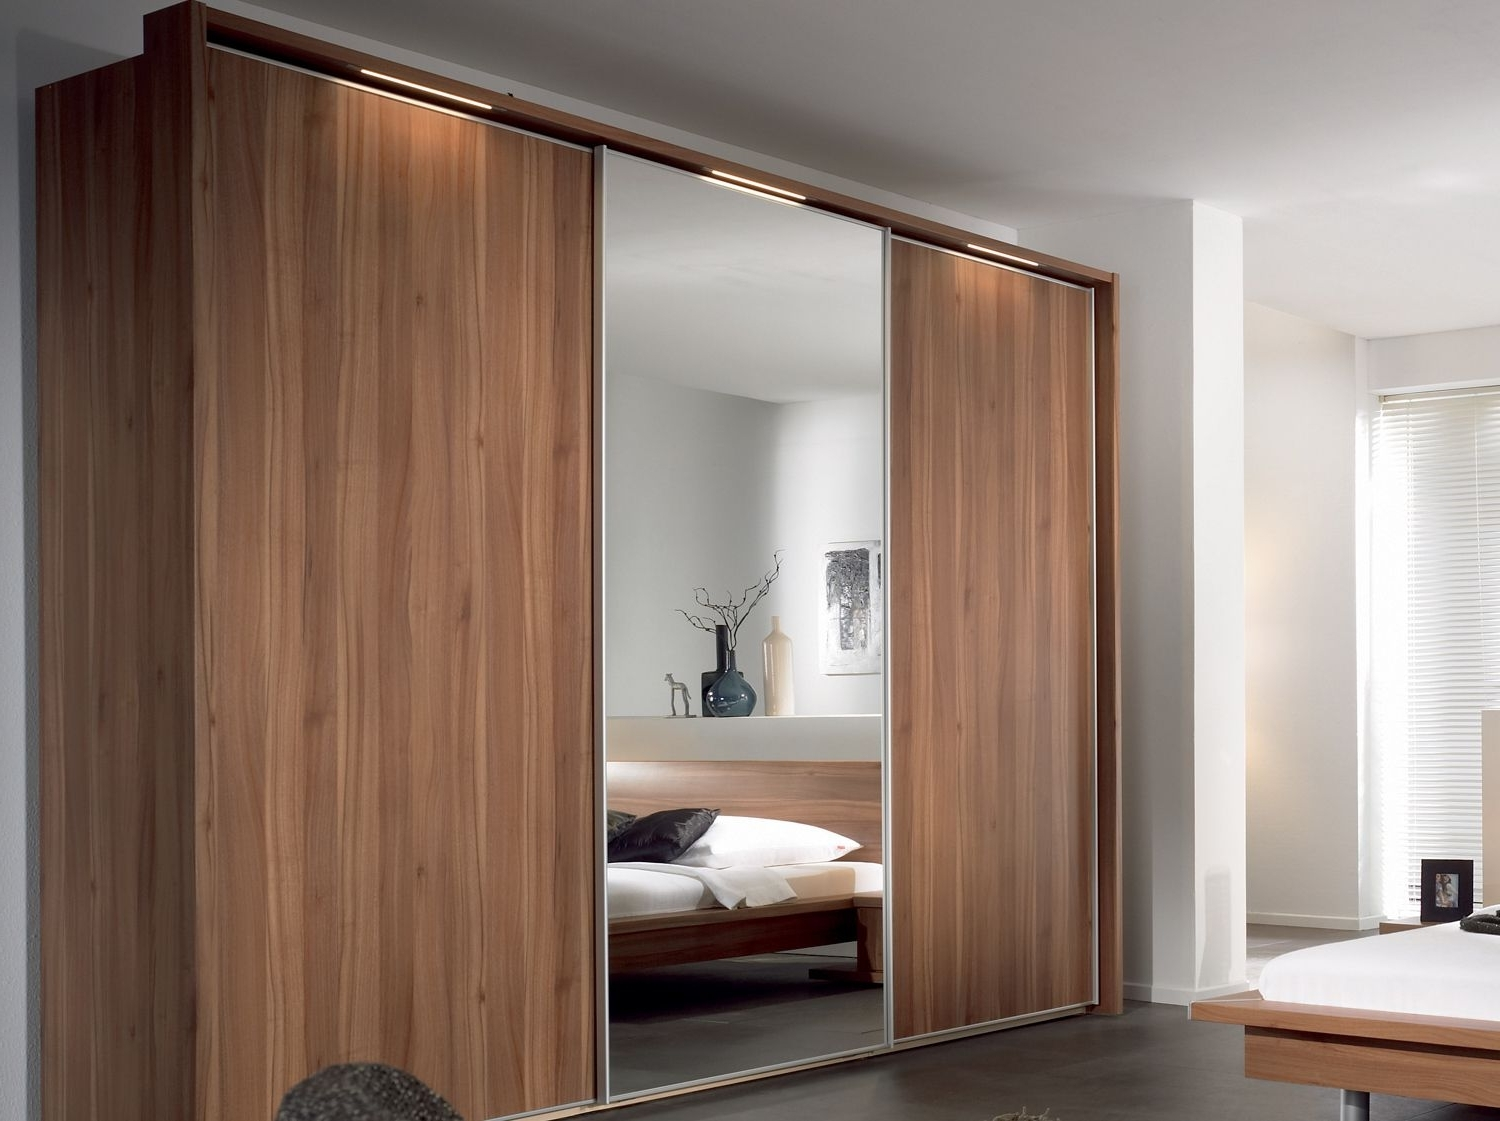 Fashionable Furniture, Sliding Wardrobe Designs With Mirror For Contemporary Pertaining To Dark Wood Wardrobes With Sliding Doors (View 7 of 15)